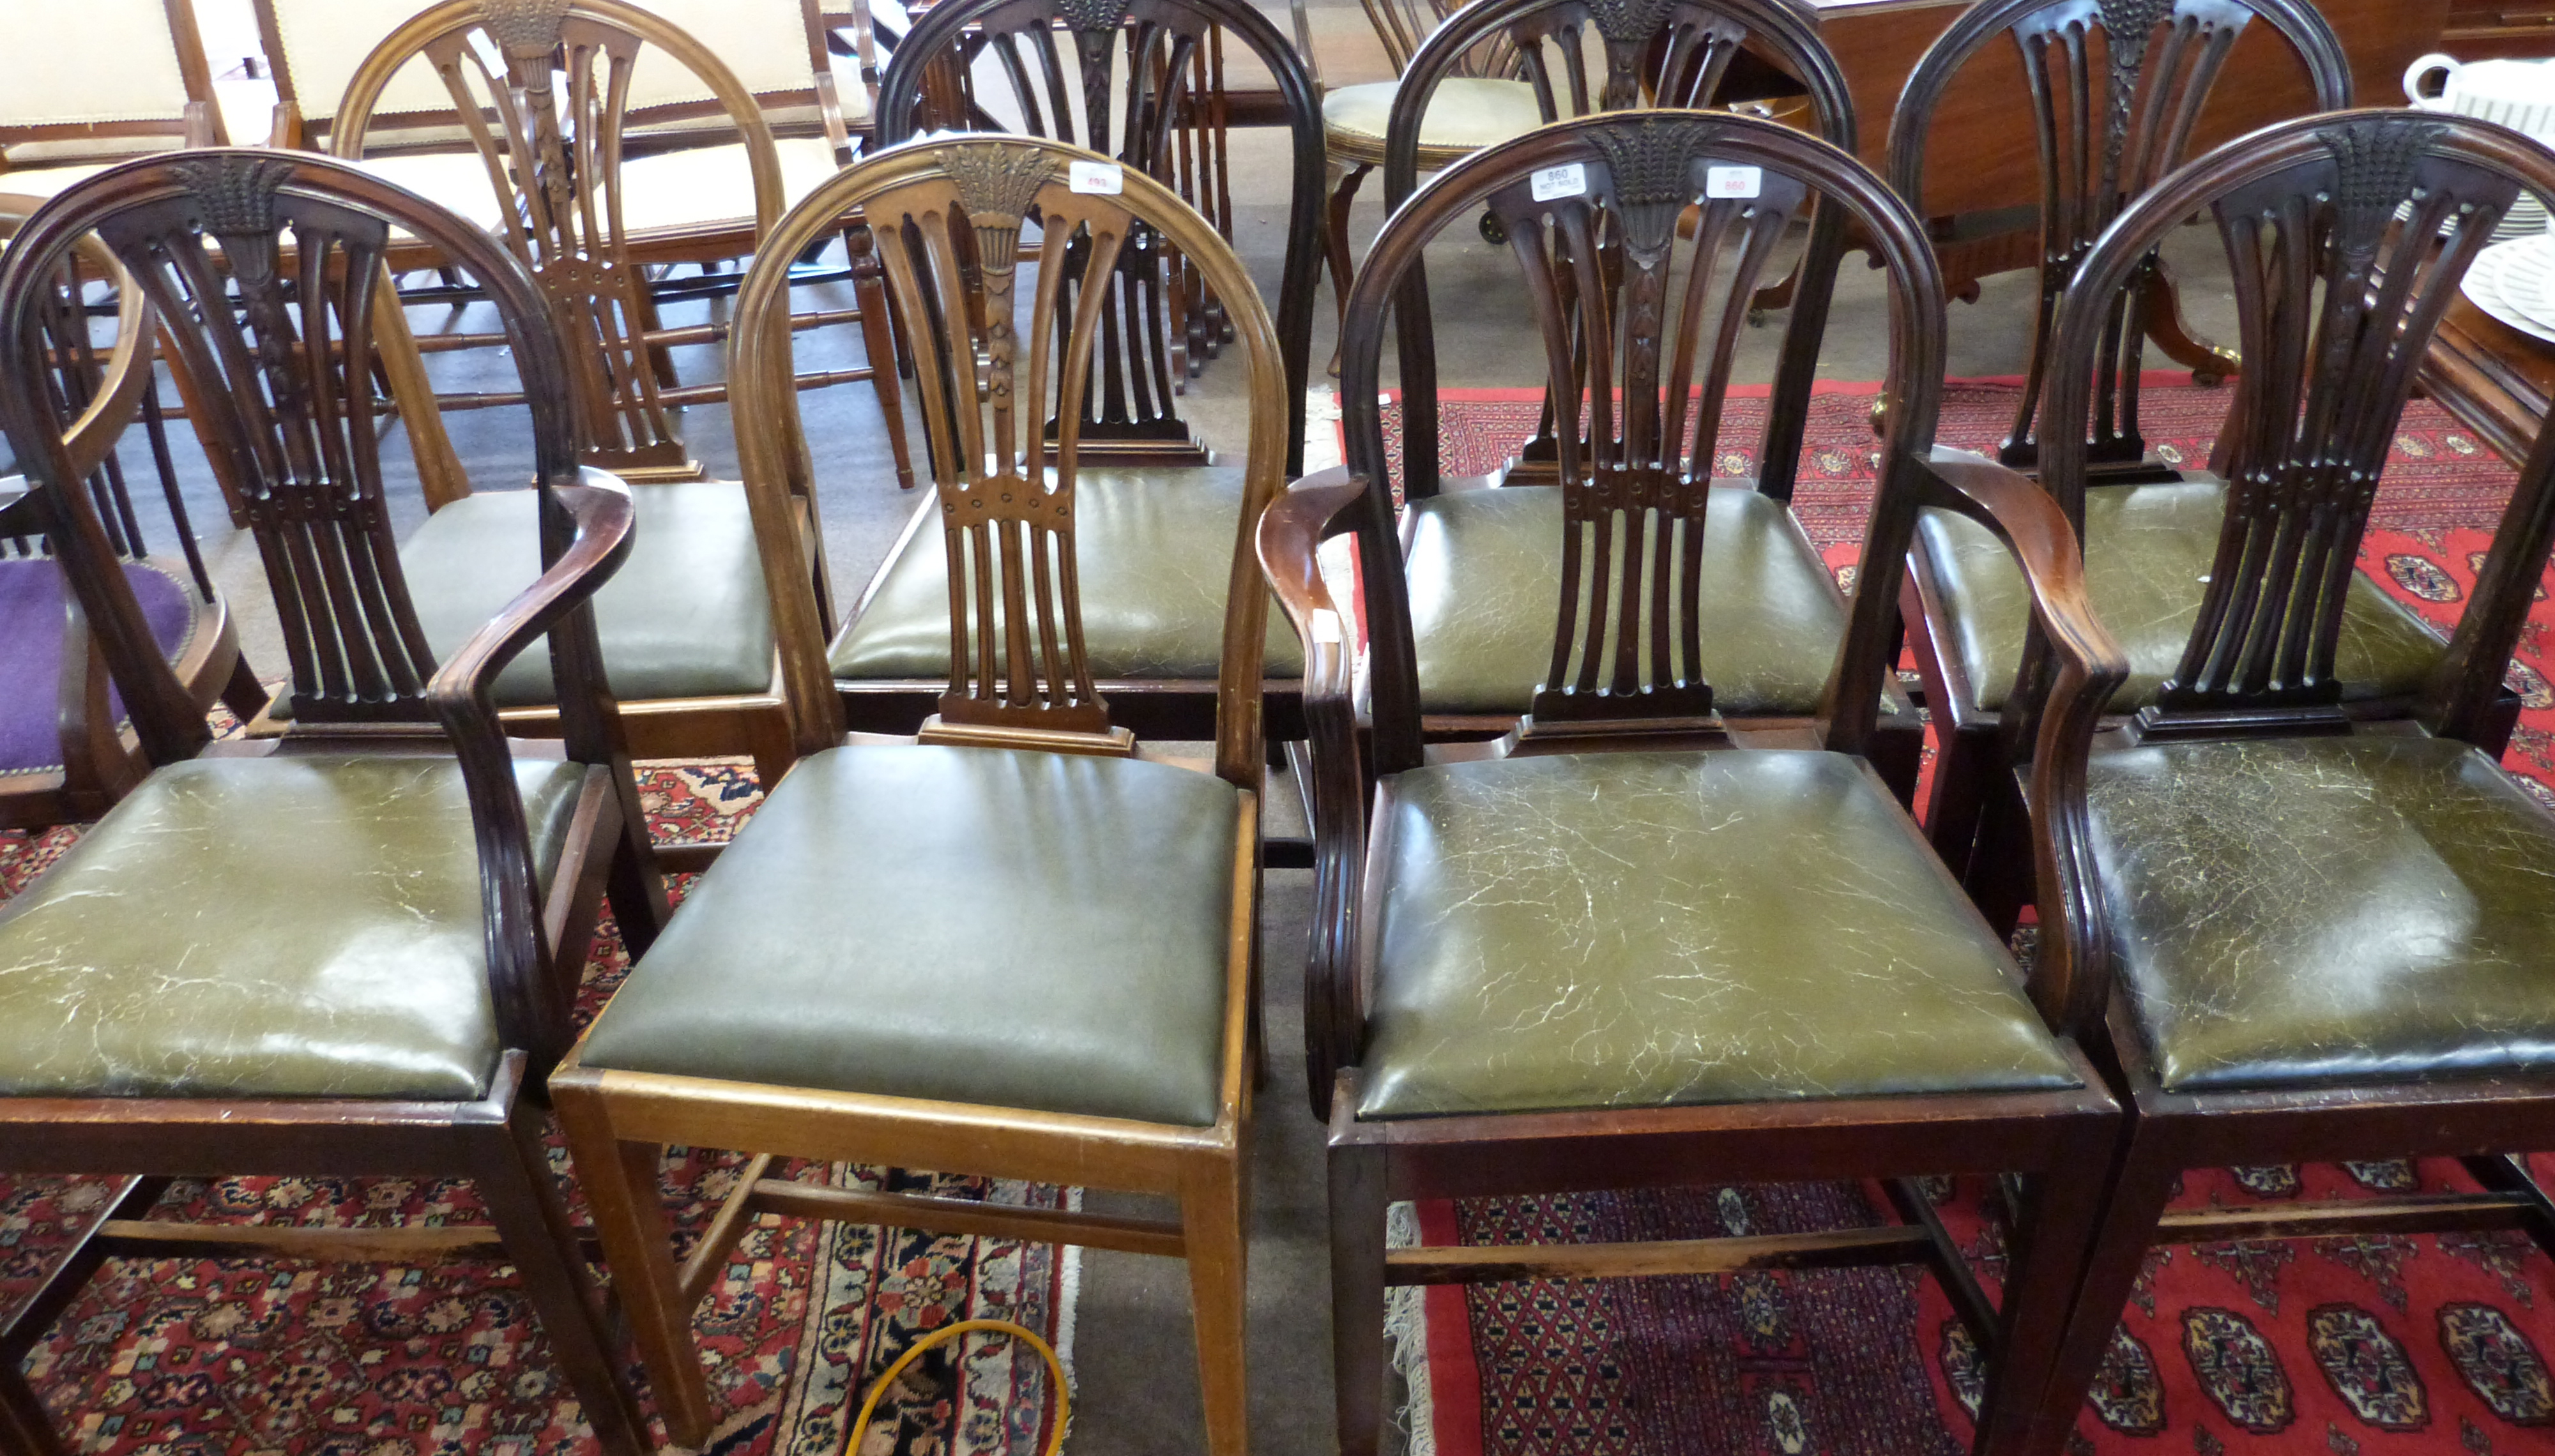 Set of eight (6+2) leather upholstered dining chairs with carved decoration - Image 2 of 3